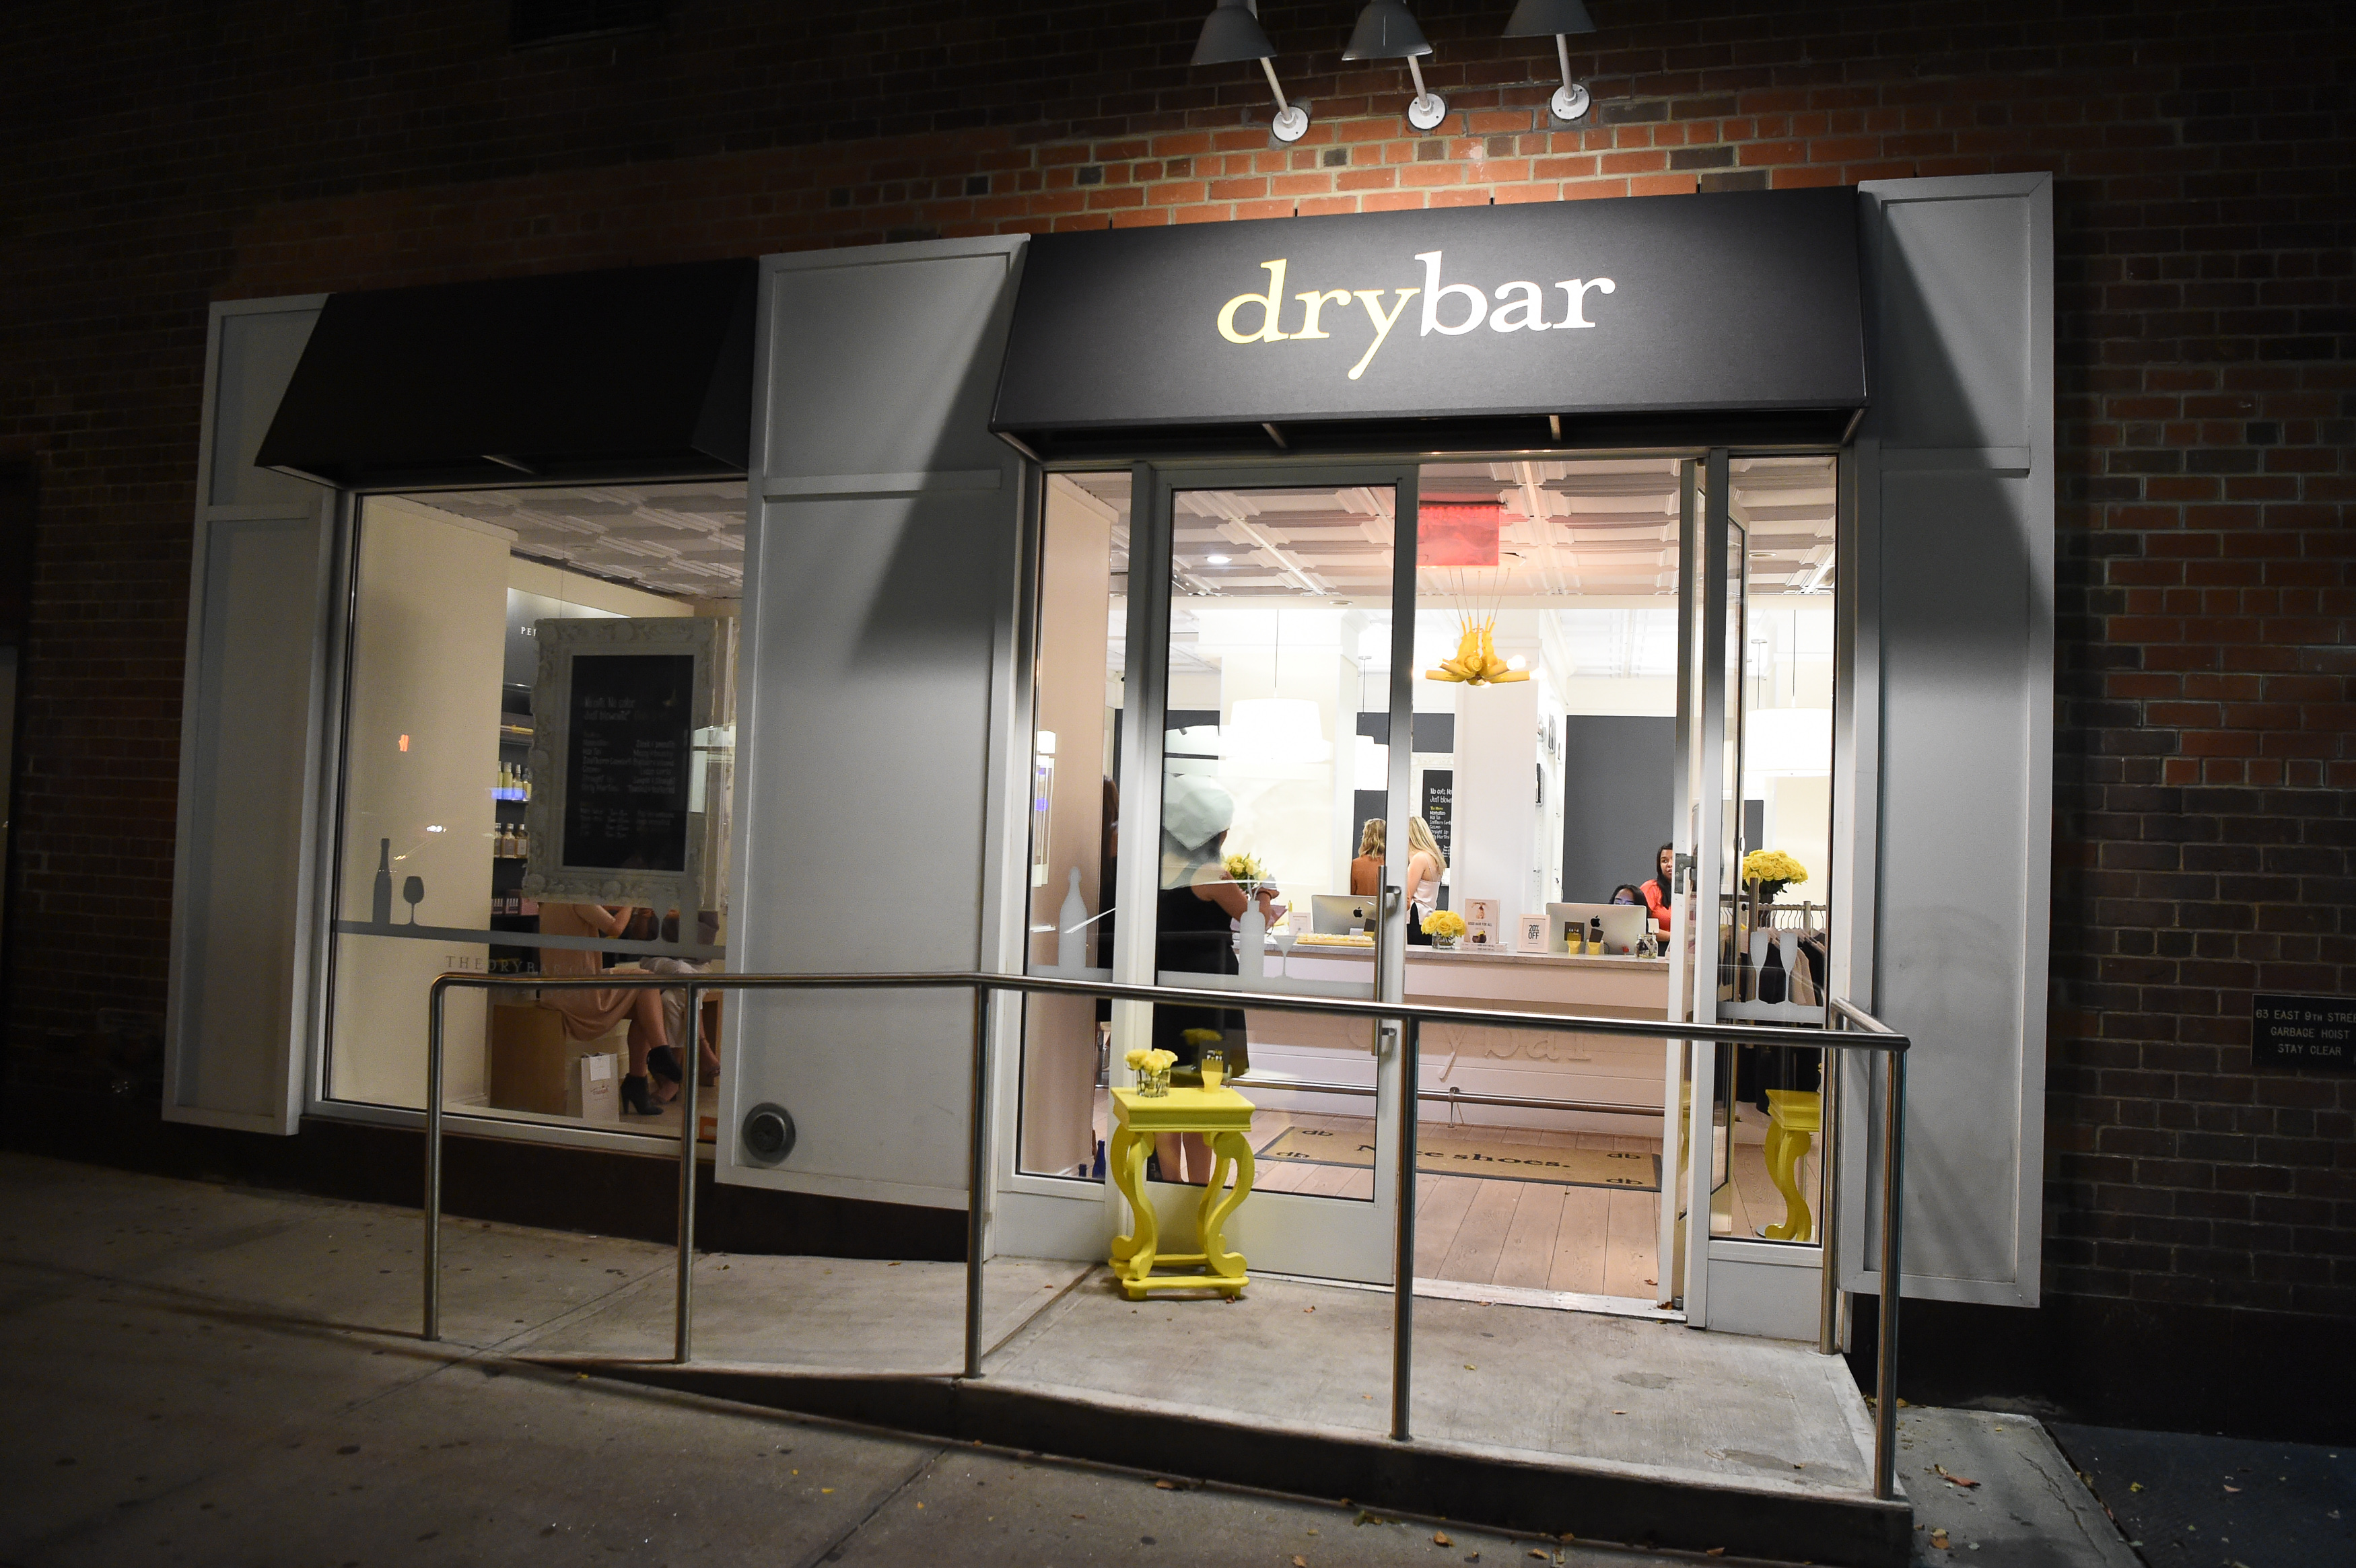 NEW YORK, NY - OCTOBER 19: Atmosphere at The New York launch of Alli Webb's book  The Drybar Guide To Good Hair For All  at Drybar Greenwich Village on October 19, 2016 in New York City. (Photo by Dave Kotinsky/Getty Images for Drybar)